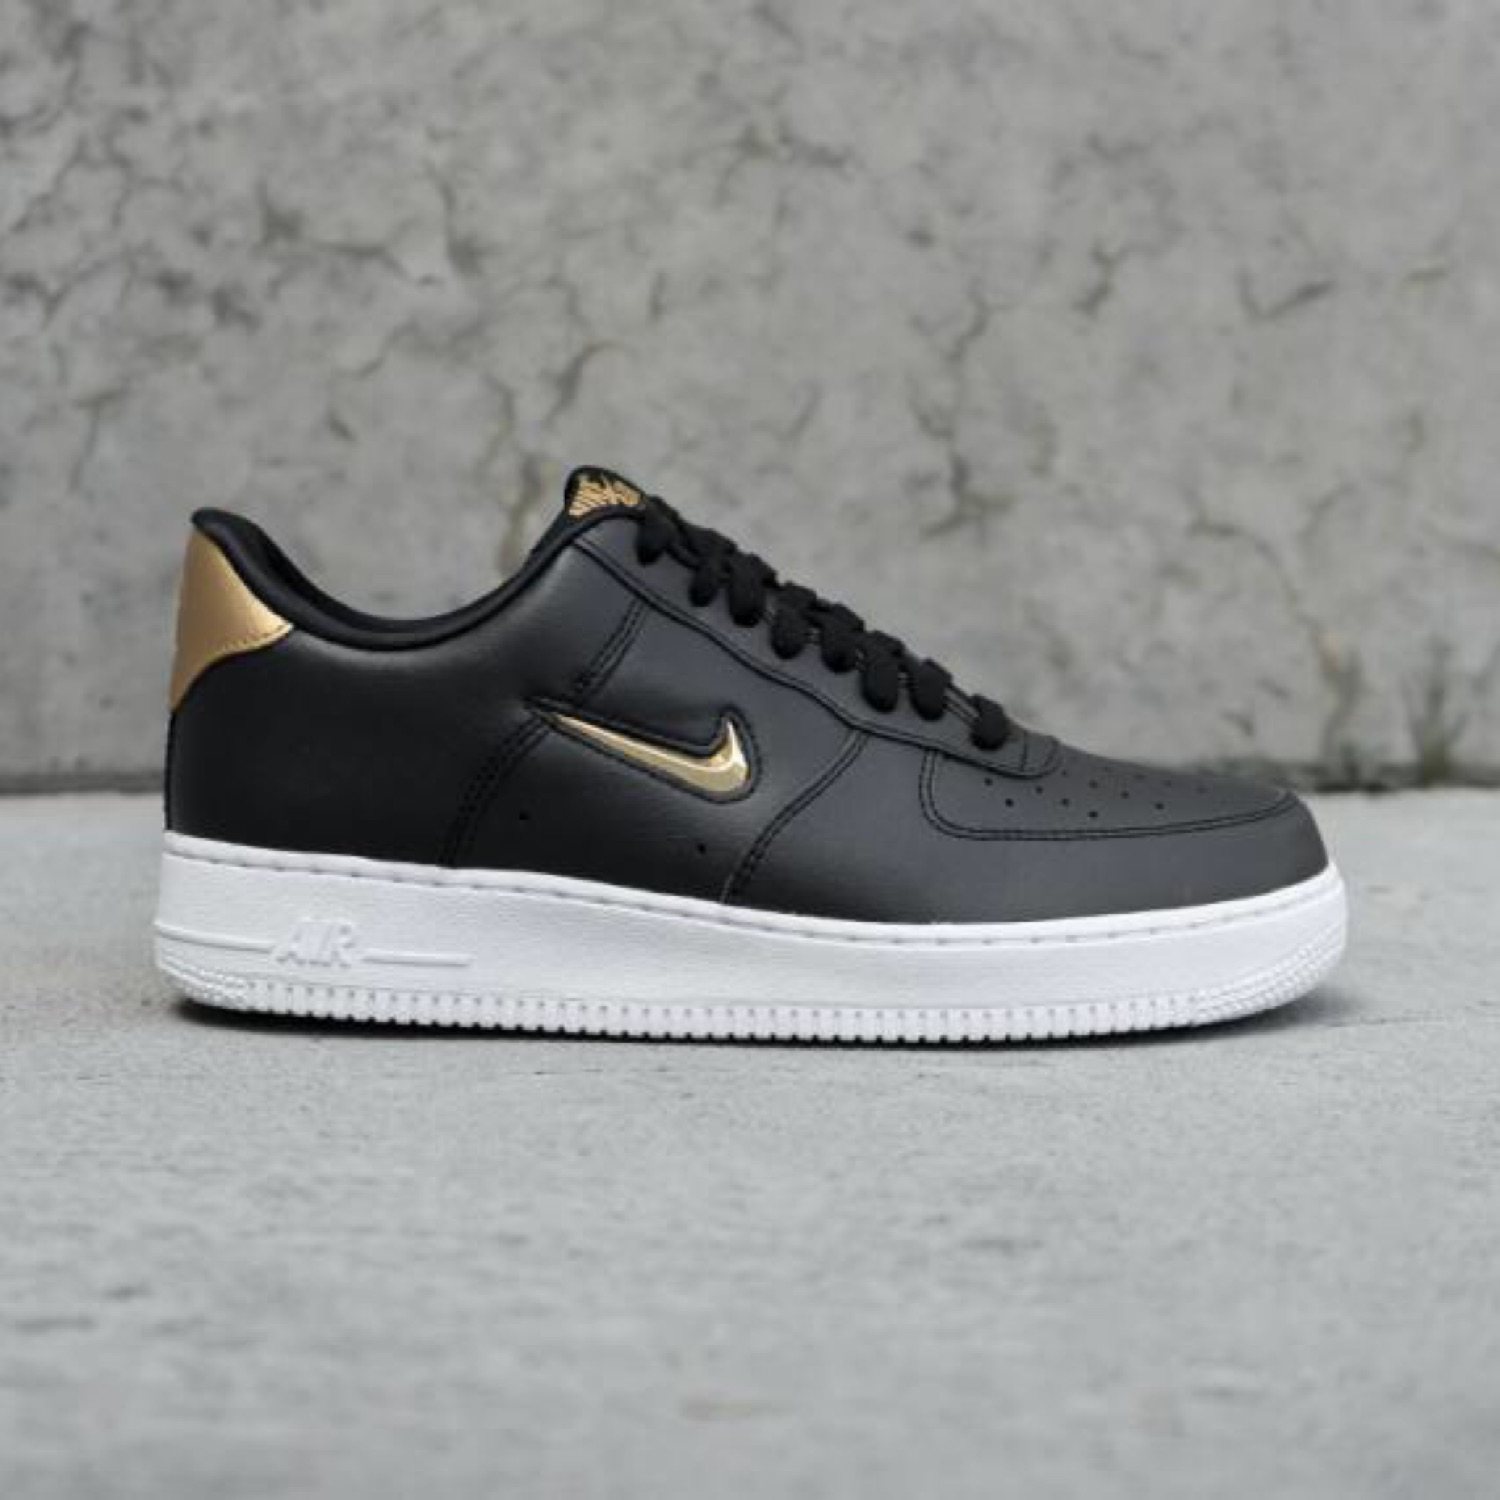 Nike Air Force 1 07 Lv8 Leather Black And Gold